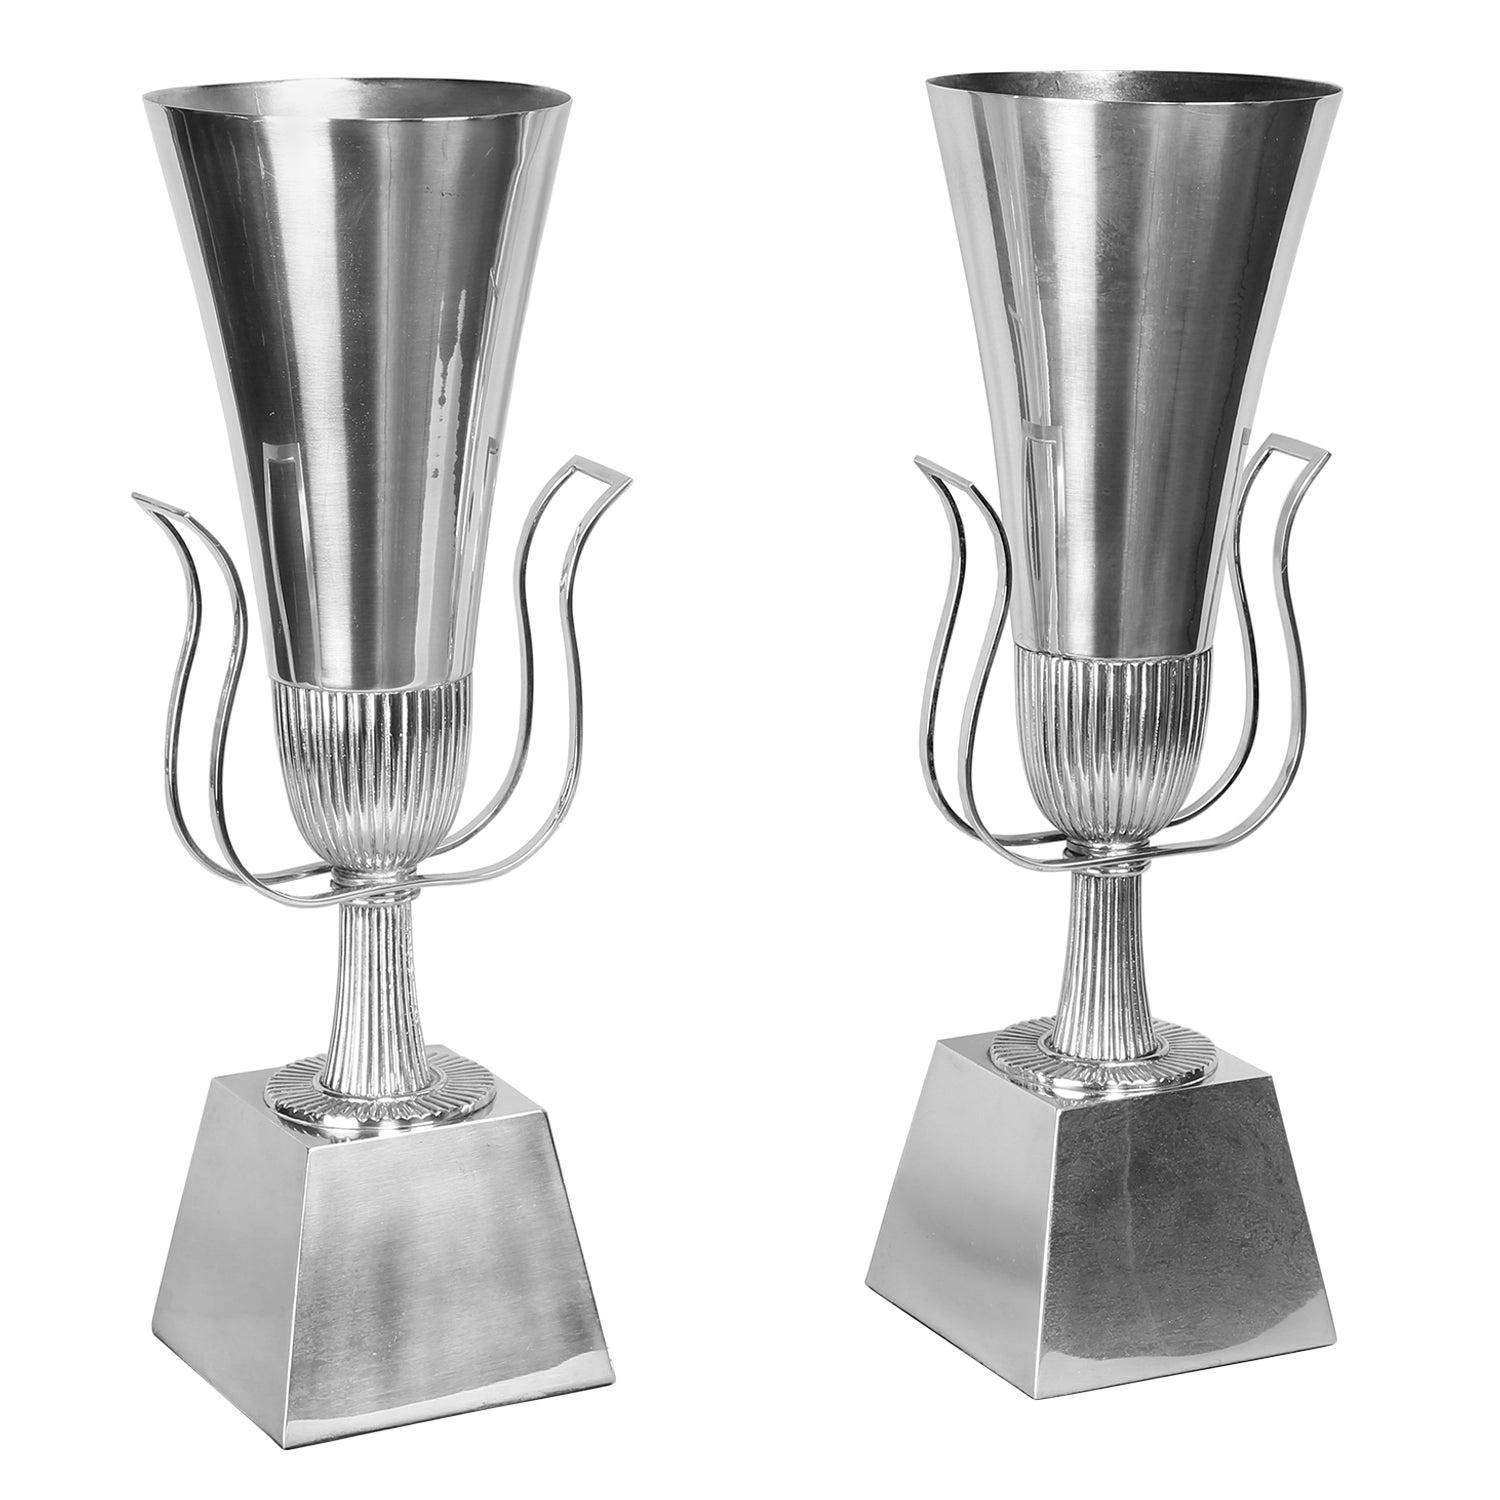 Tommi Parzinger Pair of Urn-Shaped Silver Plated Table Lamps, 1940s